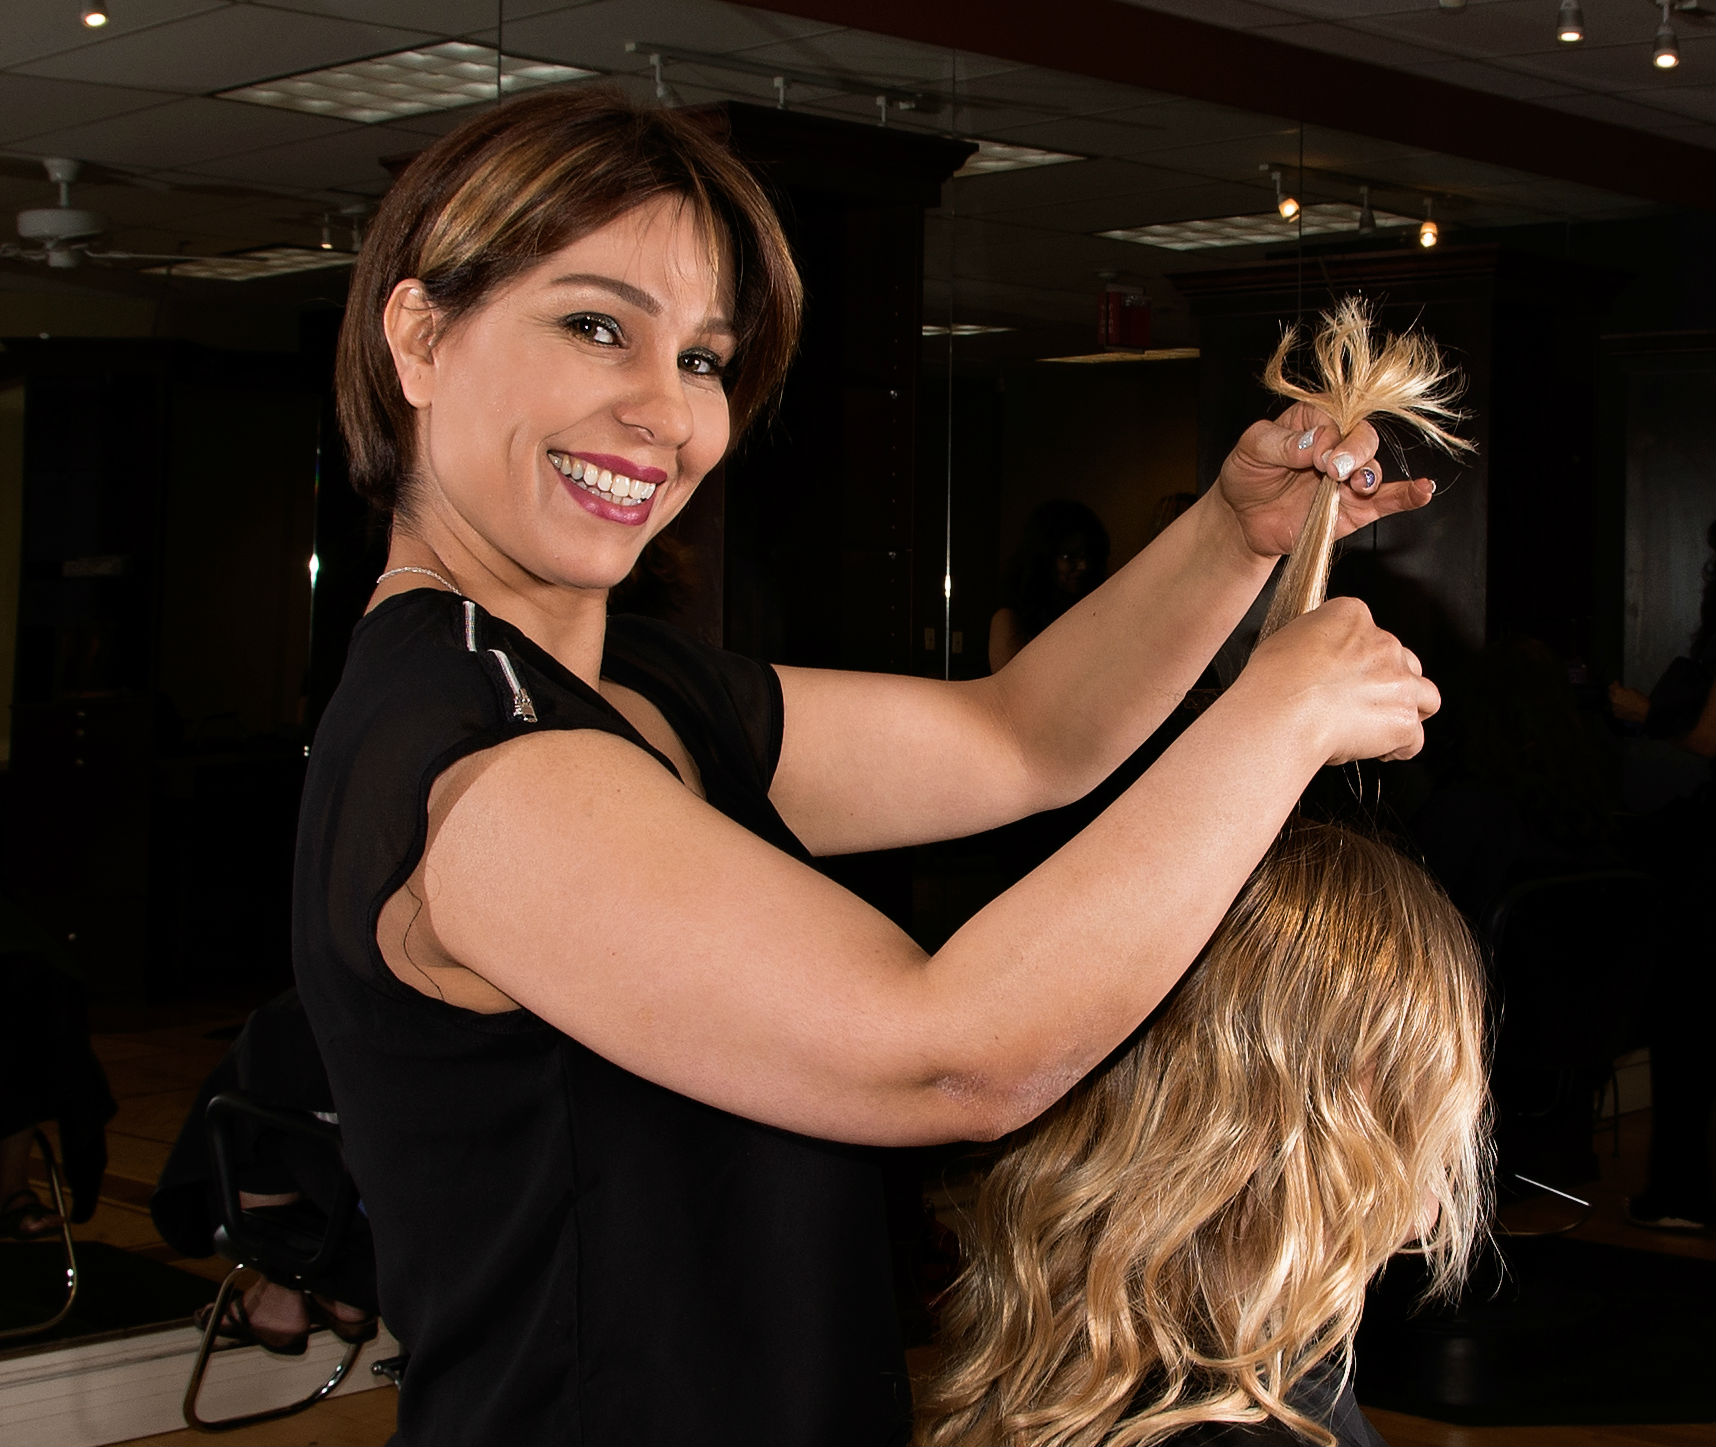 Mary Nowroozi - Hair Stylist at Salon Nevaeh in Littleton, CO